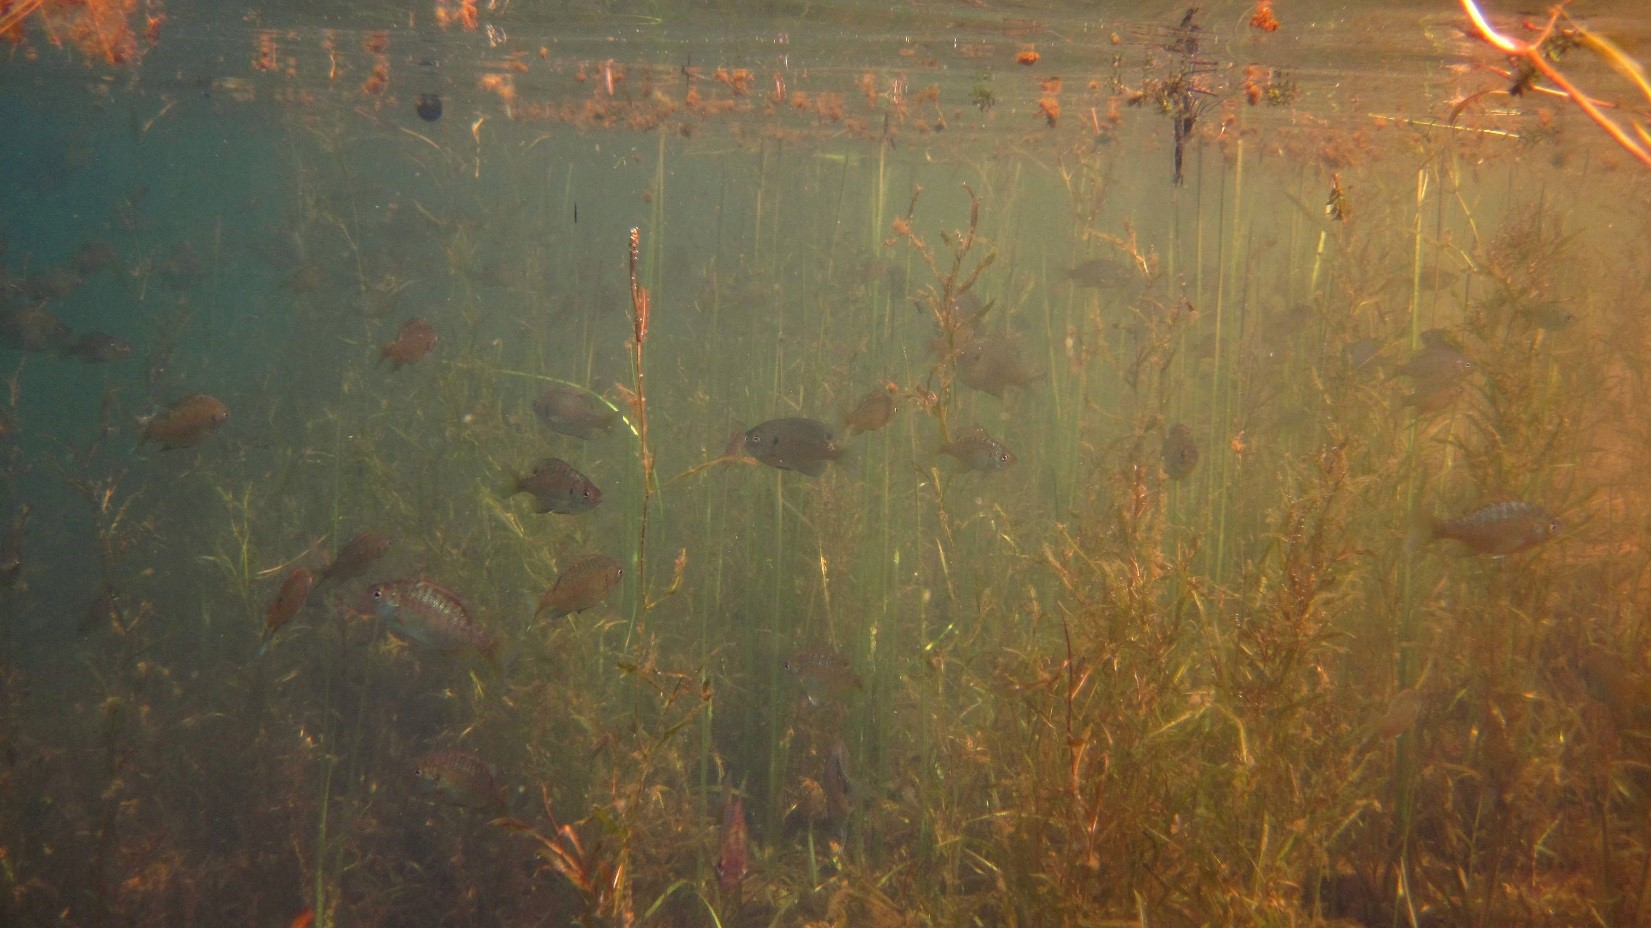 Image of bluegills swimming in an area of submersed aquatic plants.